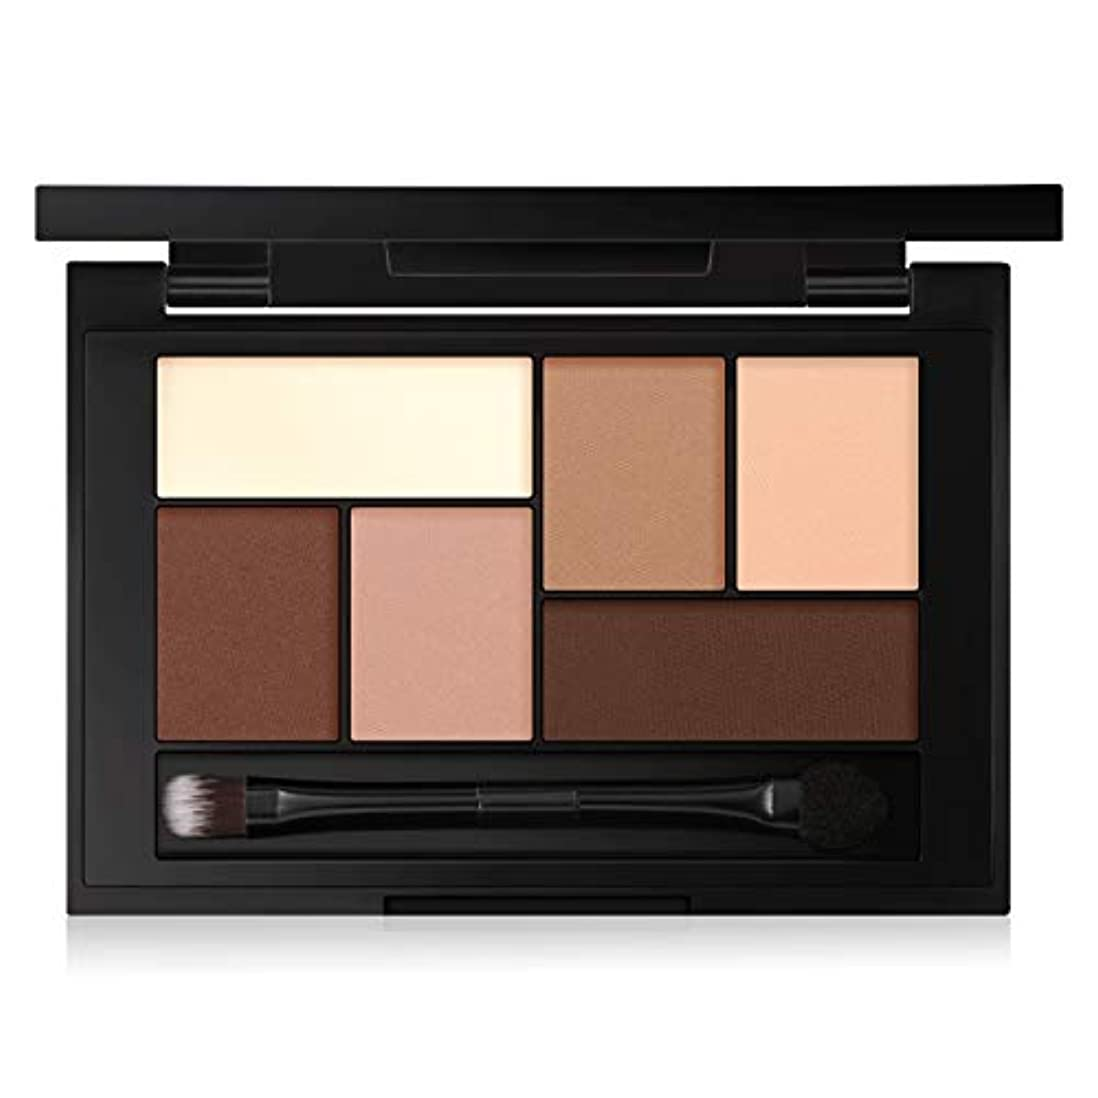 甘い霊側溝SACE LADY Eyeshadow Palette Highly Pigmented Matte and Shimmer Finish Eye Makeup 12g/0.4oz.